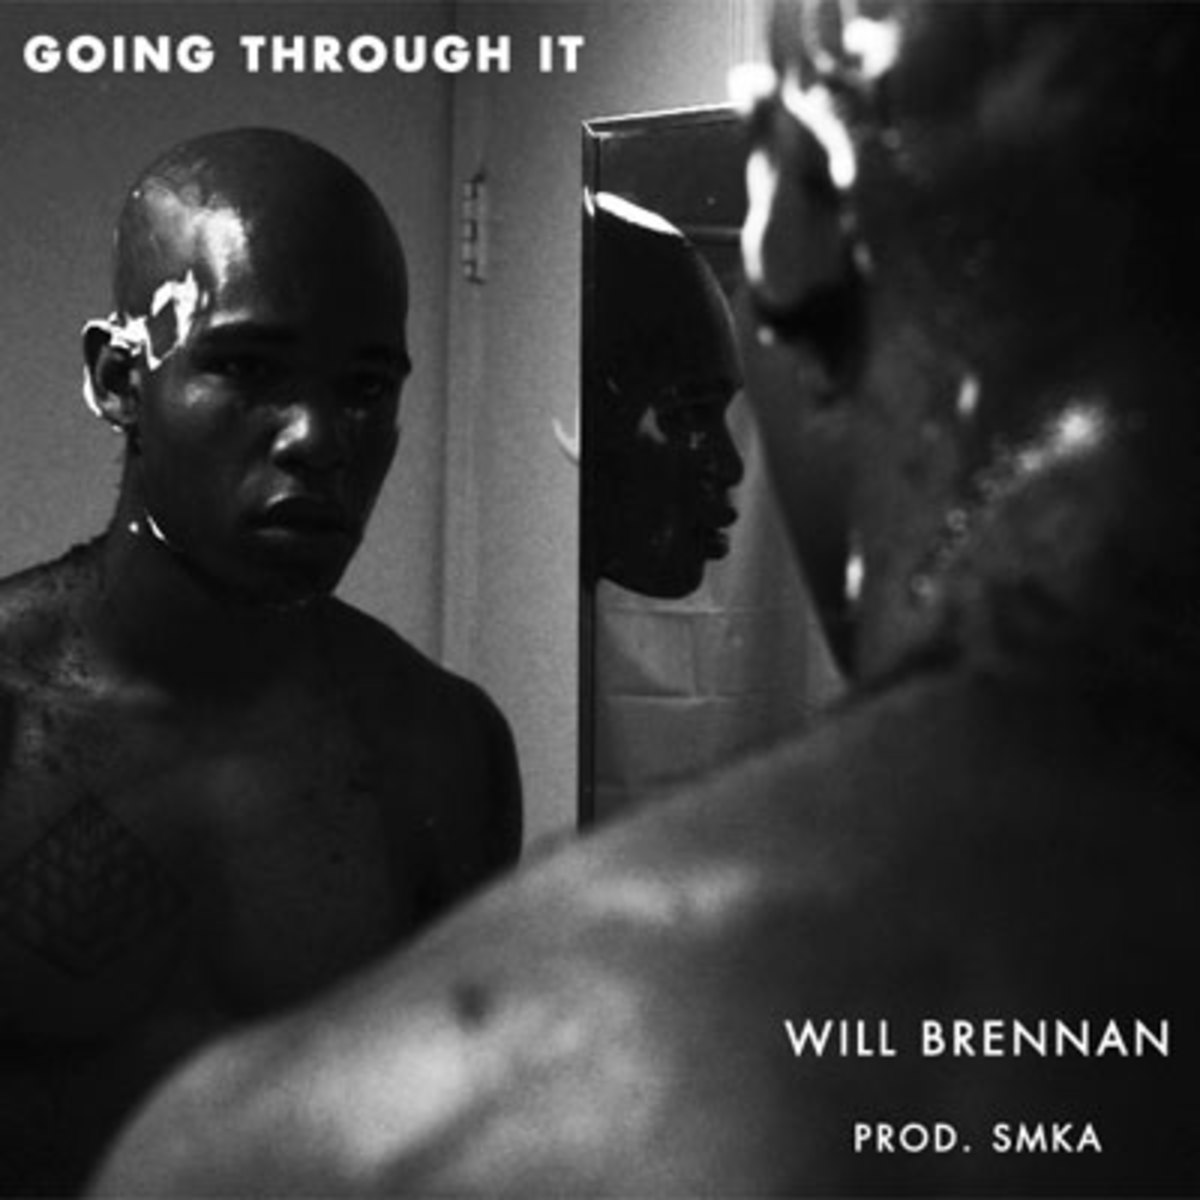 willbrennan-goingthroughit.jpg